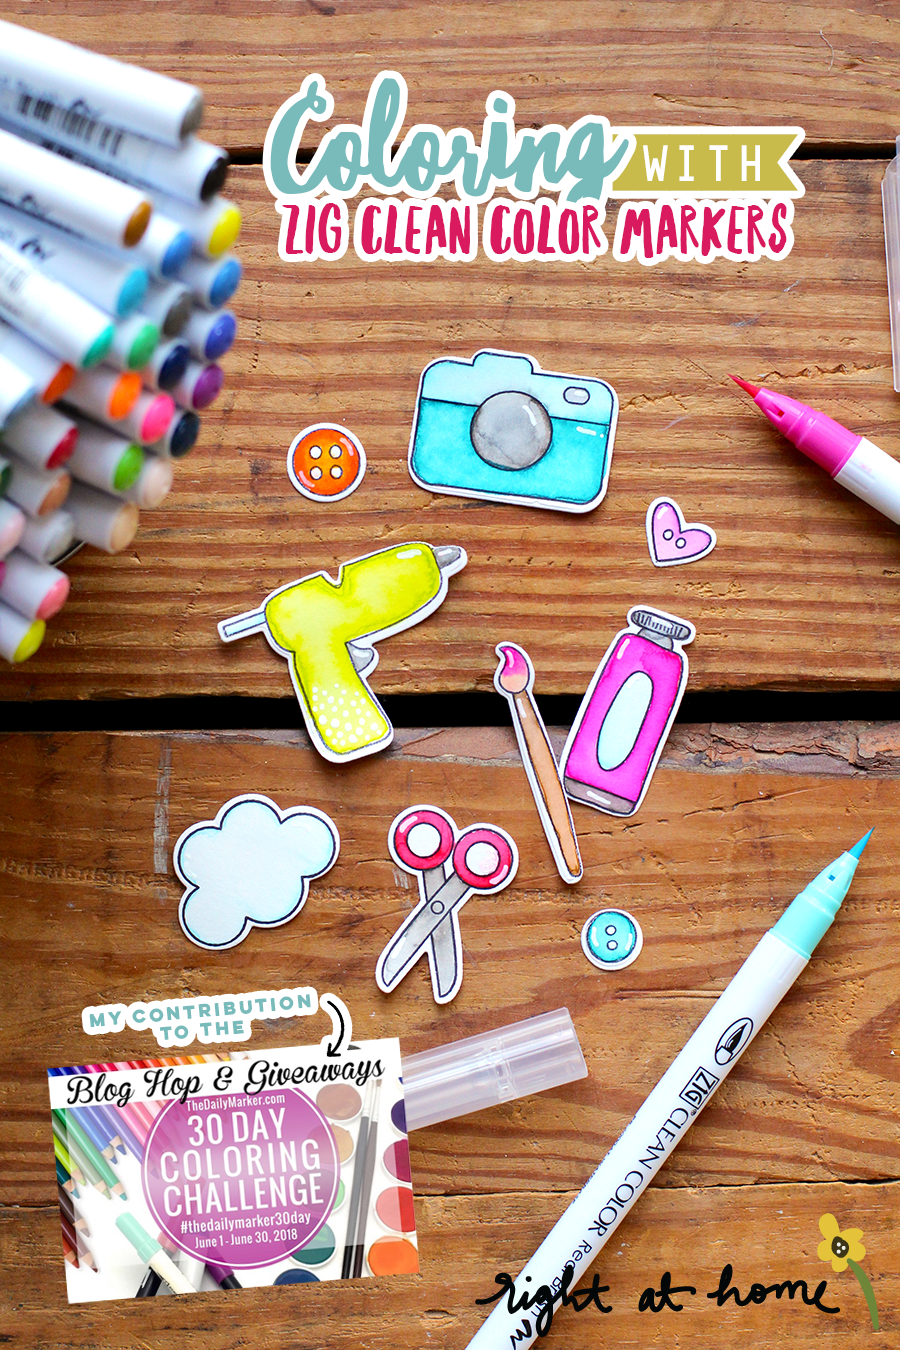 Coloring with ZIG Clean Color Real Brush Markers // The Daily Marker 30 Day Coloring Challenge